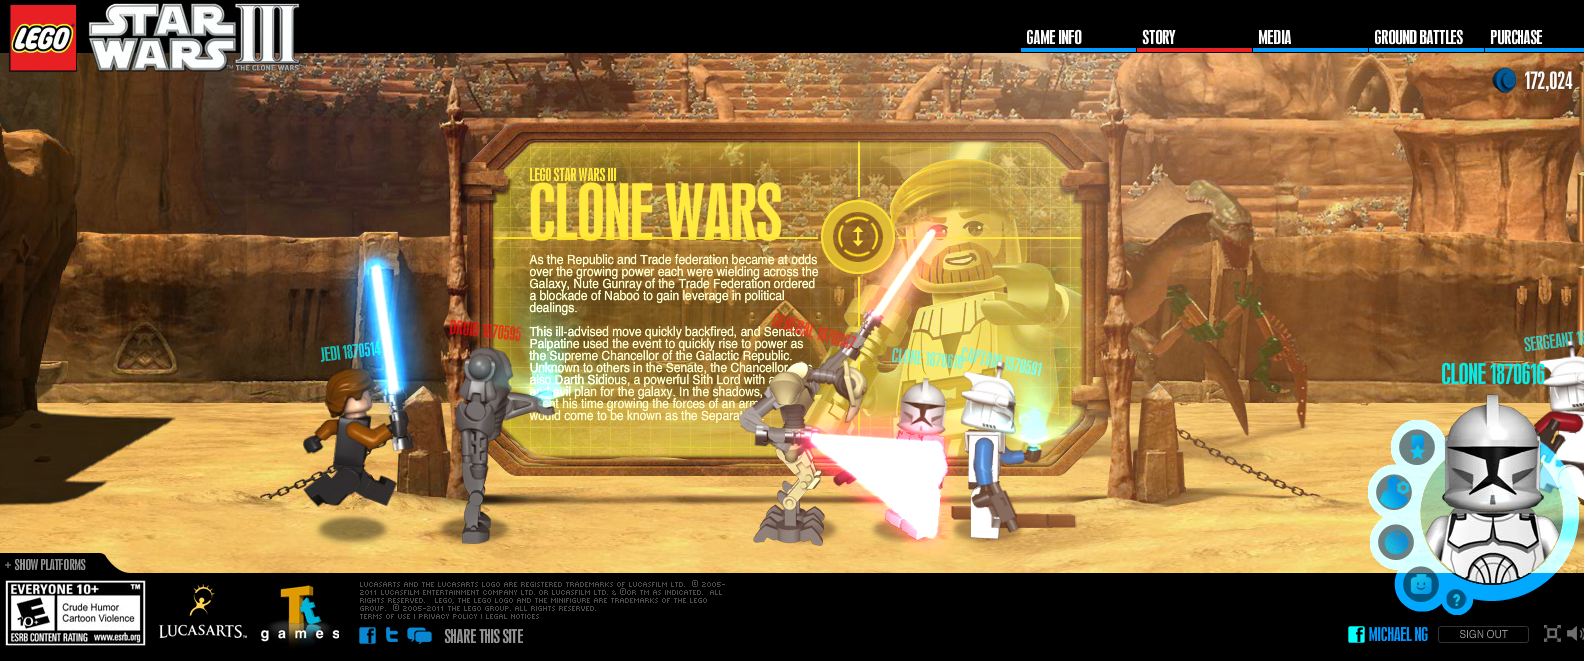 LucasArts.com   LEGO® Star Wars III  The Clone Wars3.png